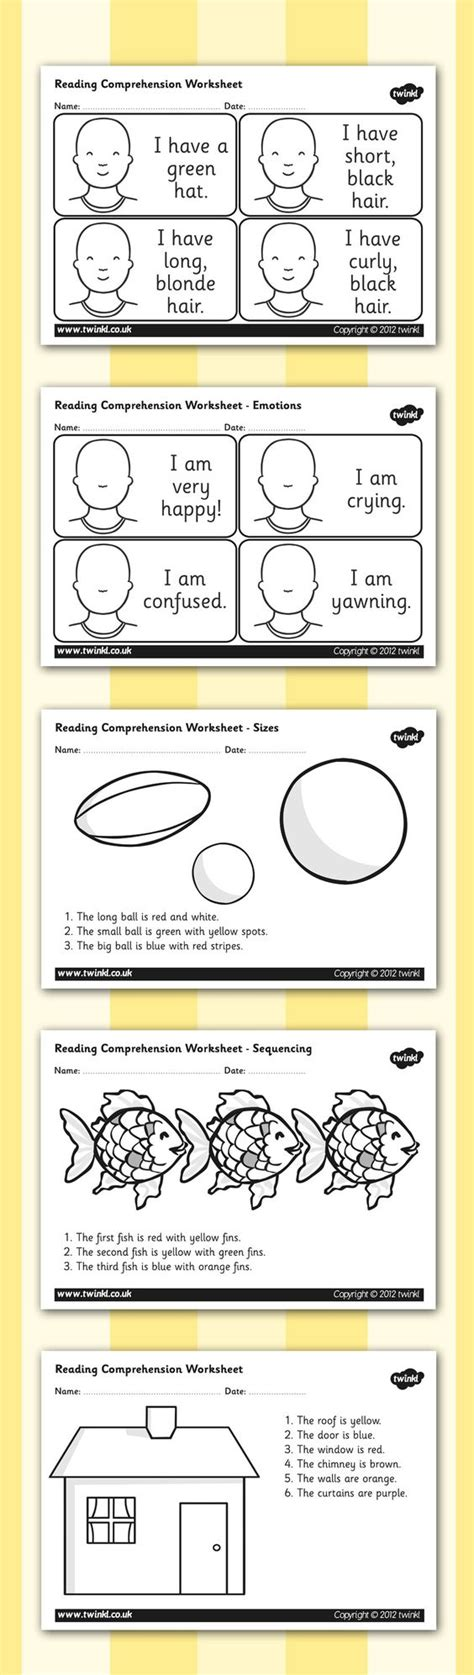 literacy worksheets ks1 primary resources twinkl resources gt gt reading comprehension worksheets